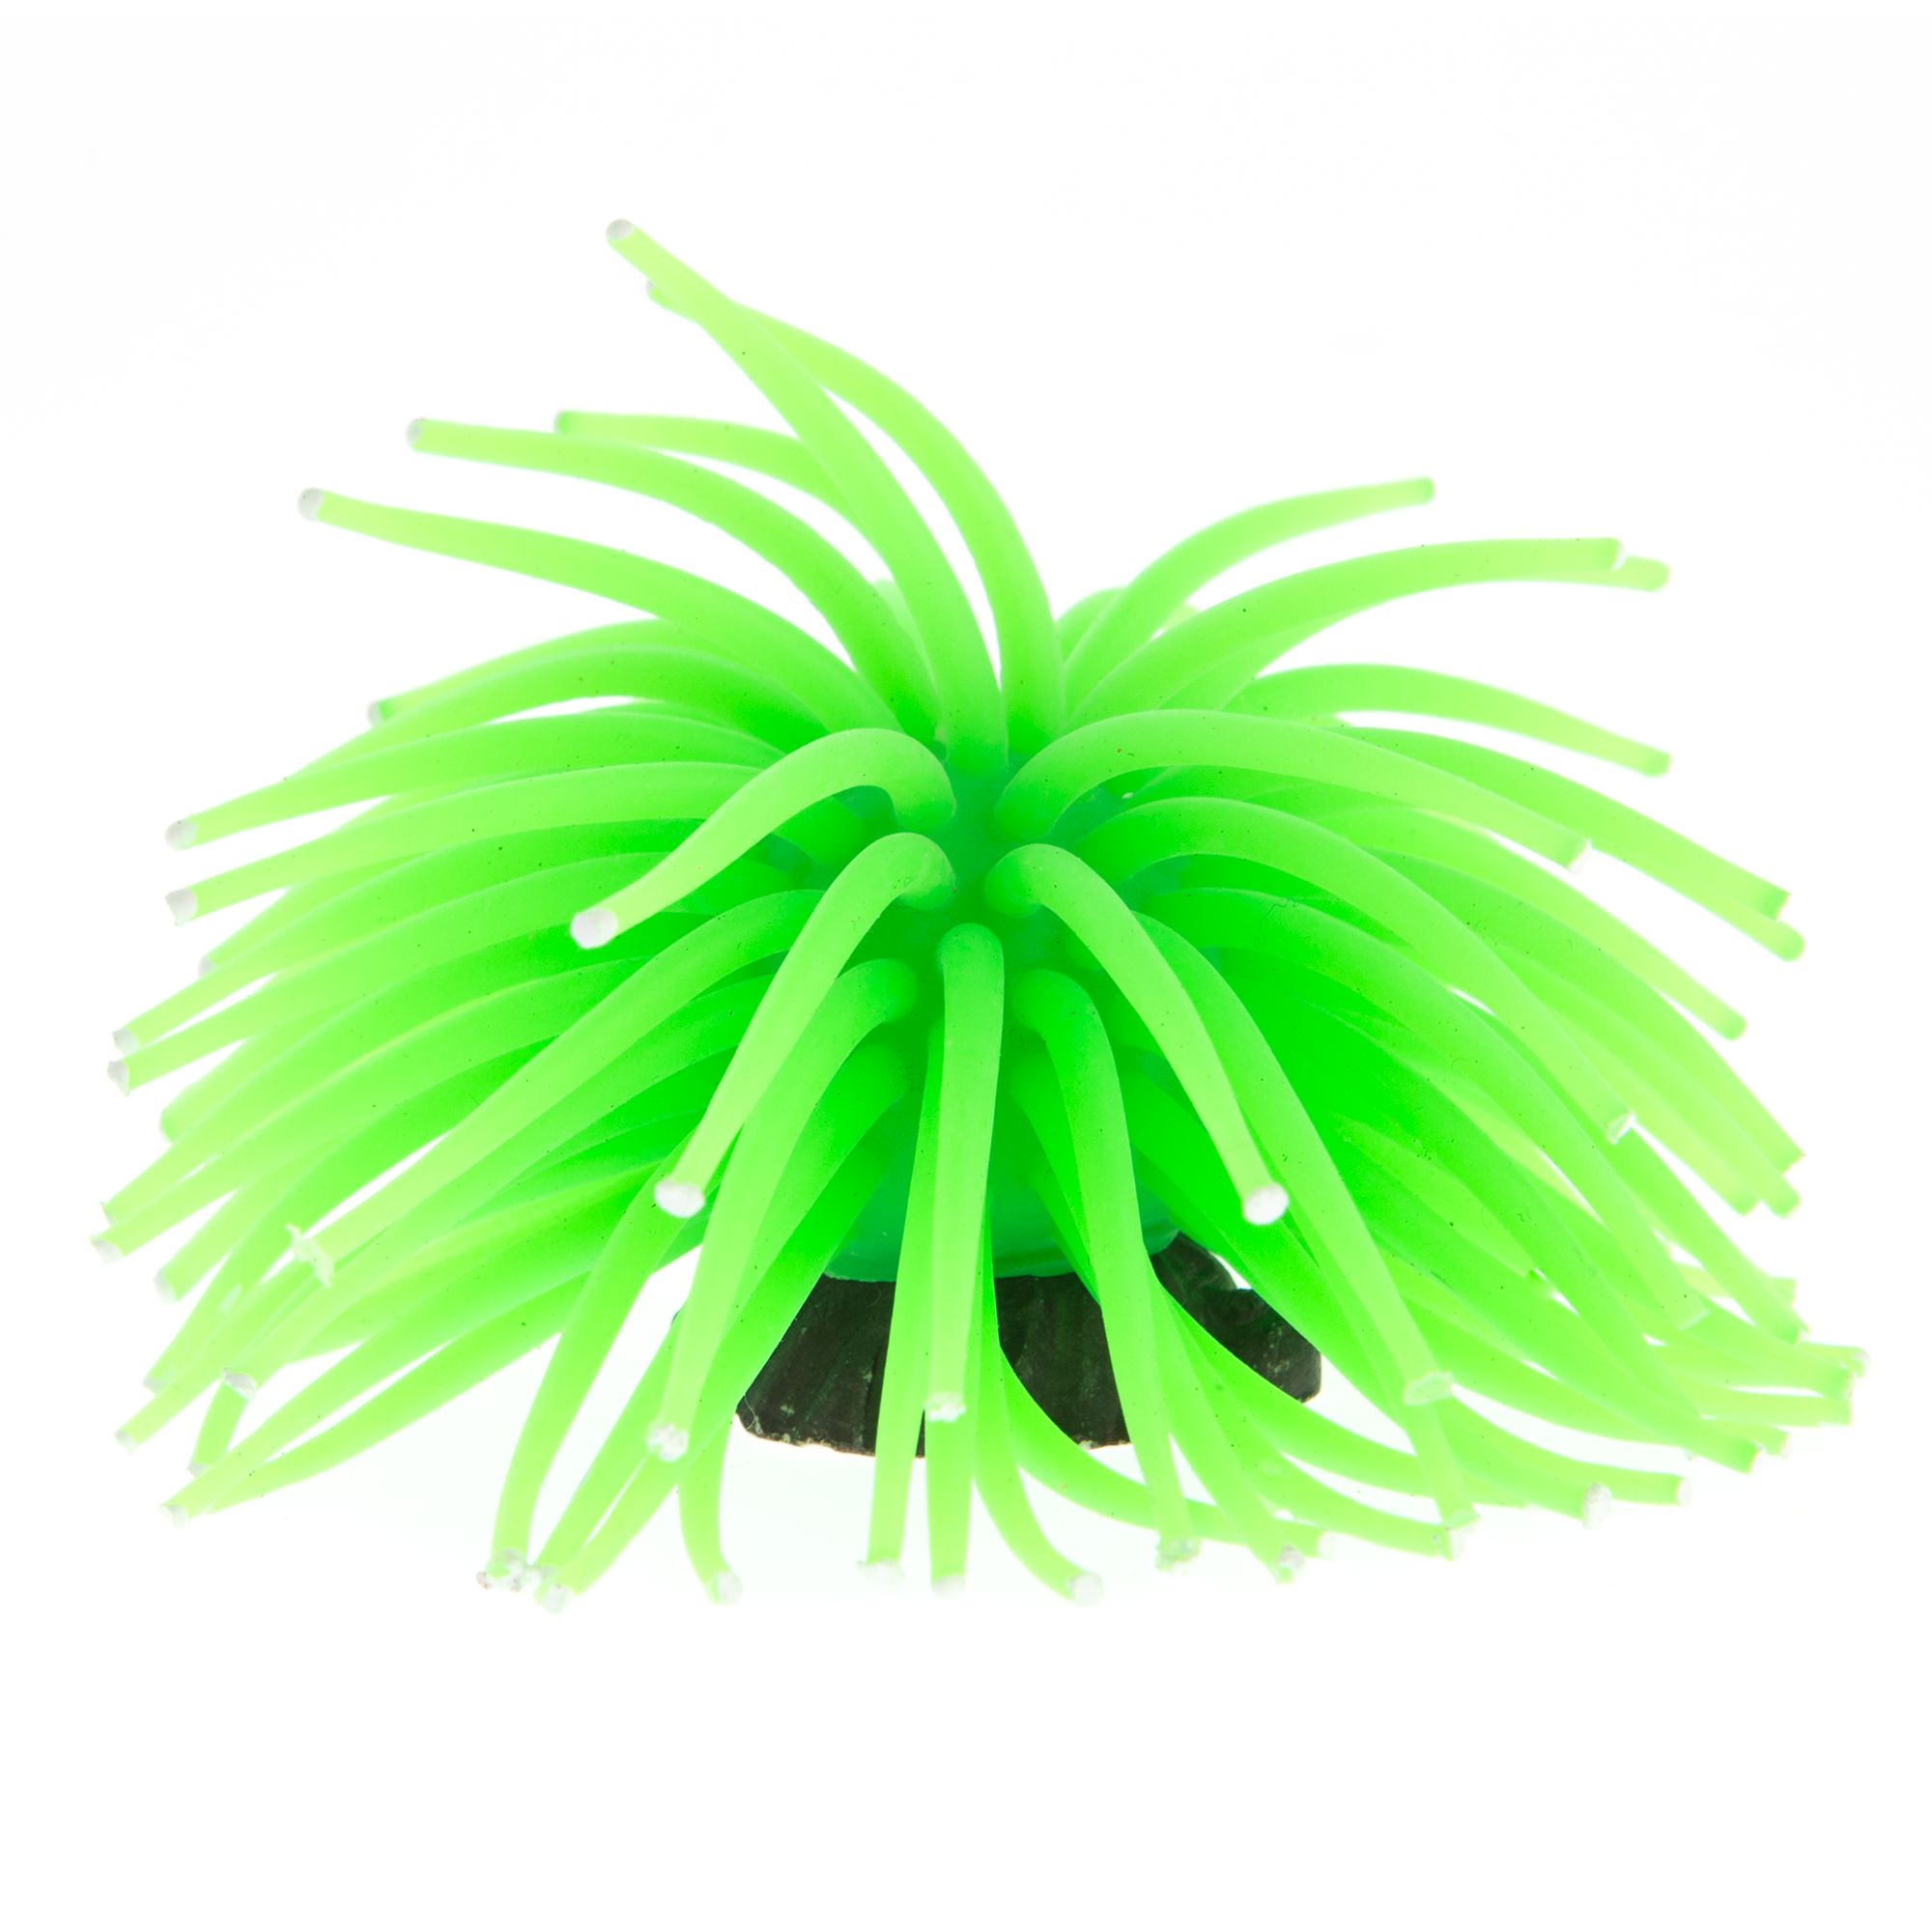 Glofish Green Anemone Aquarium Ornament